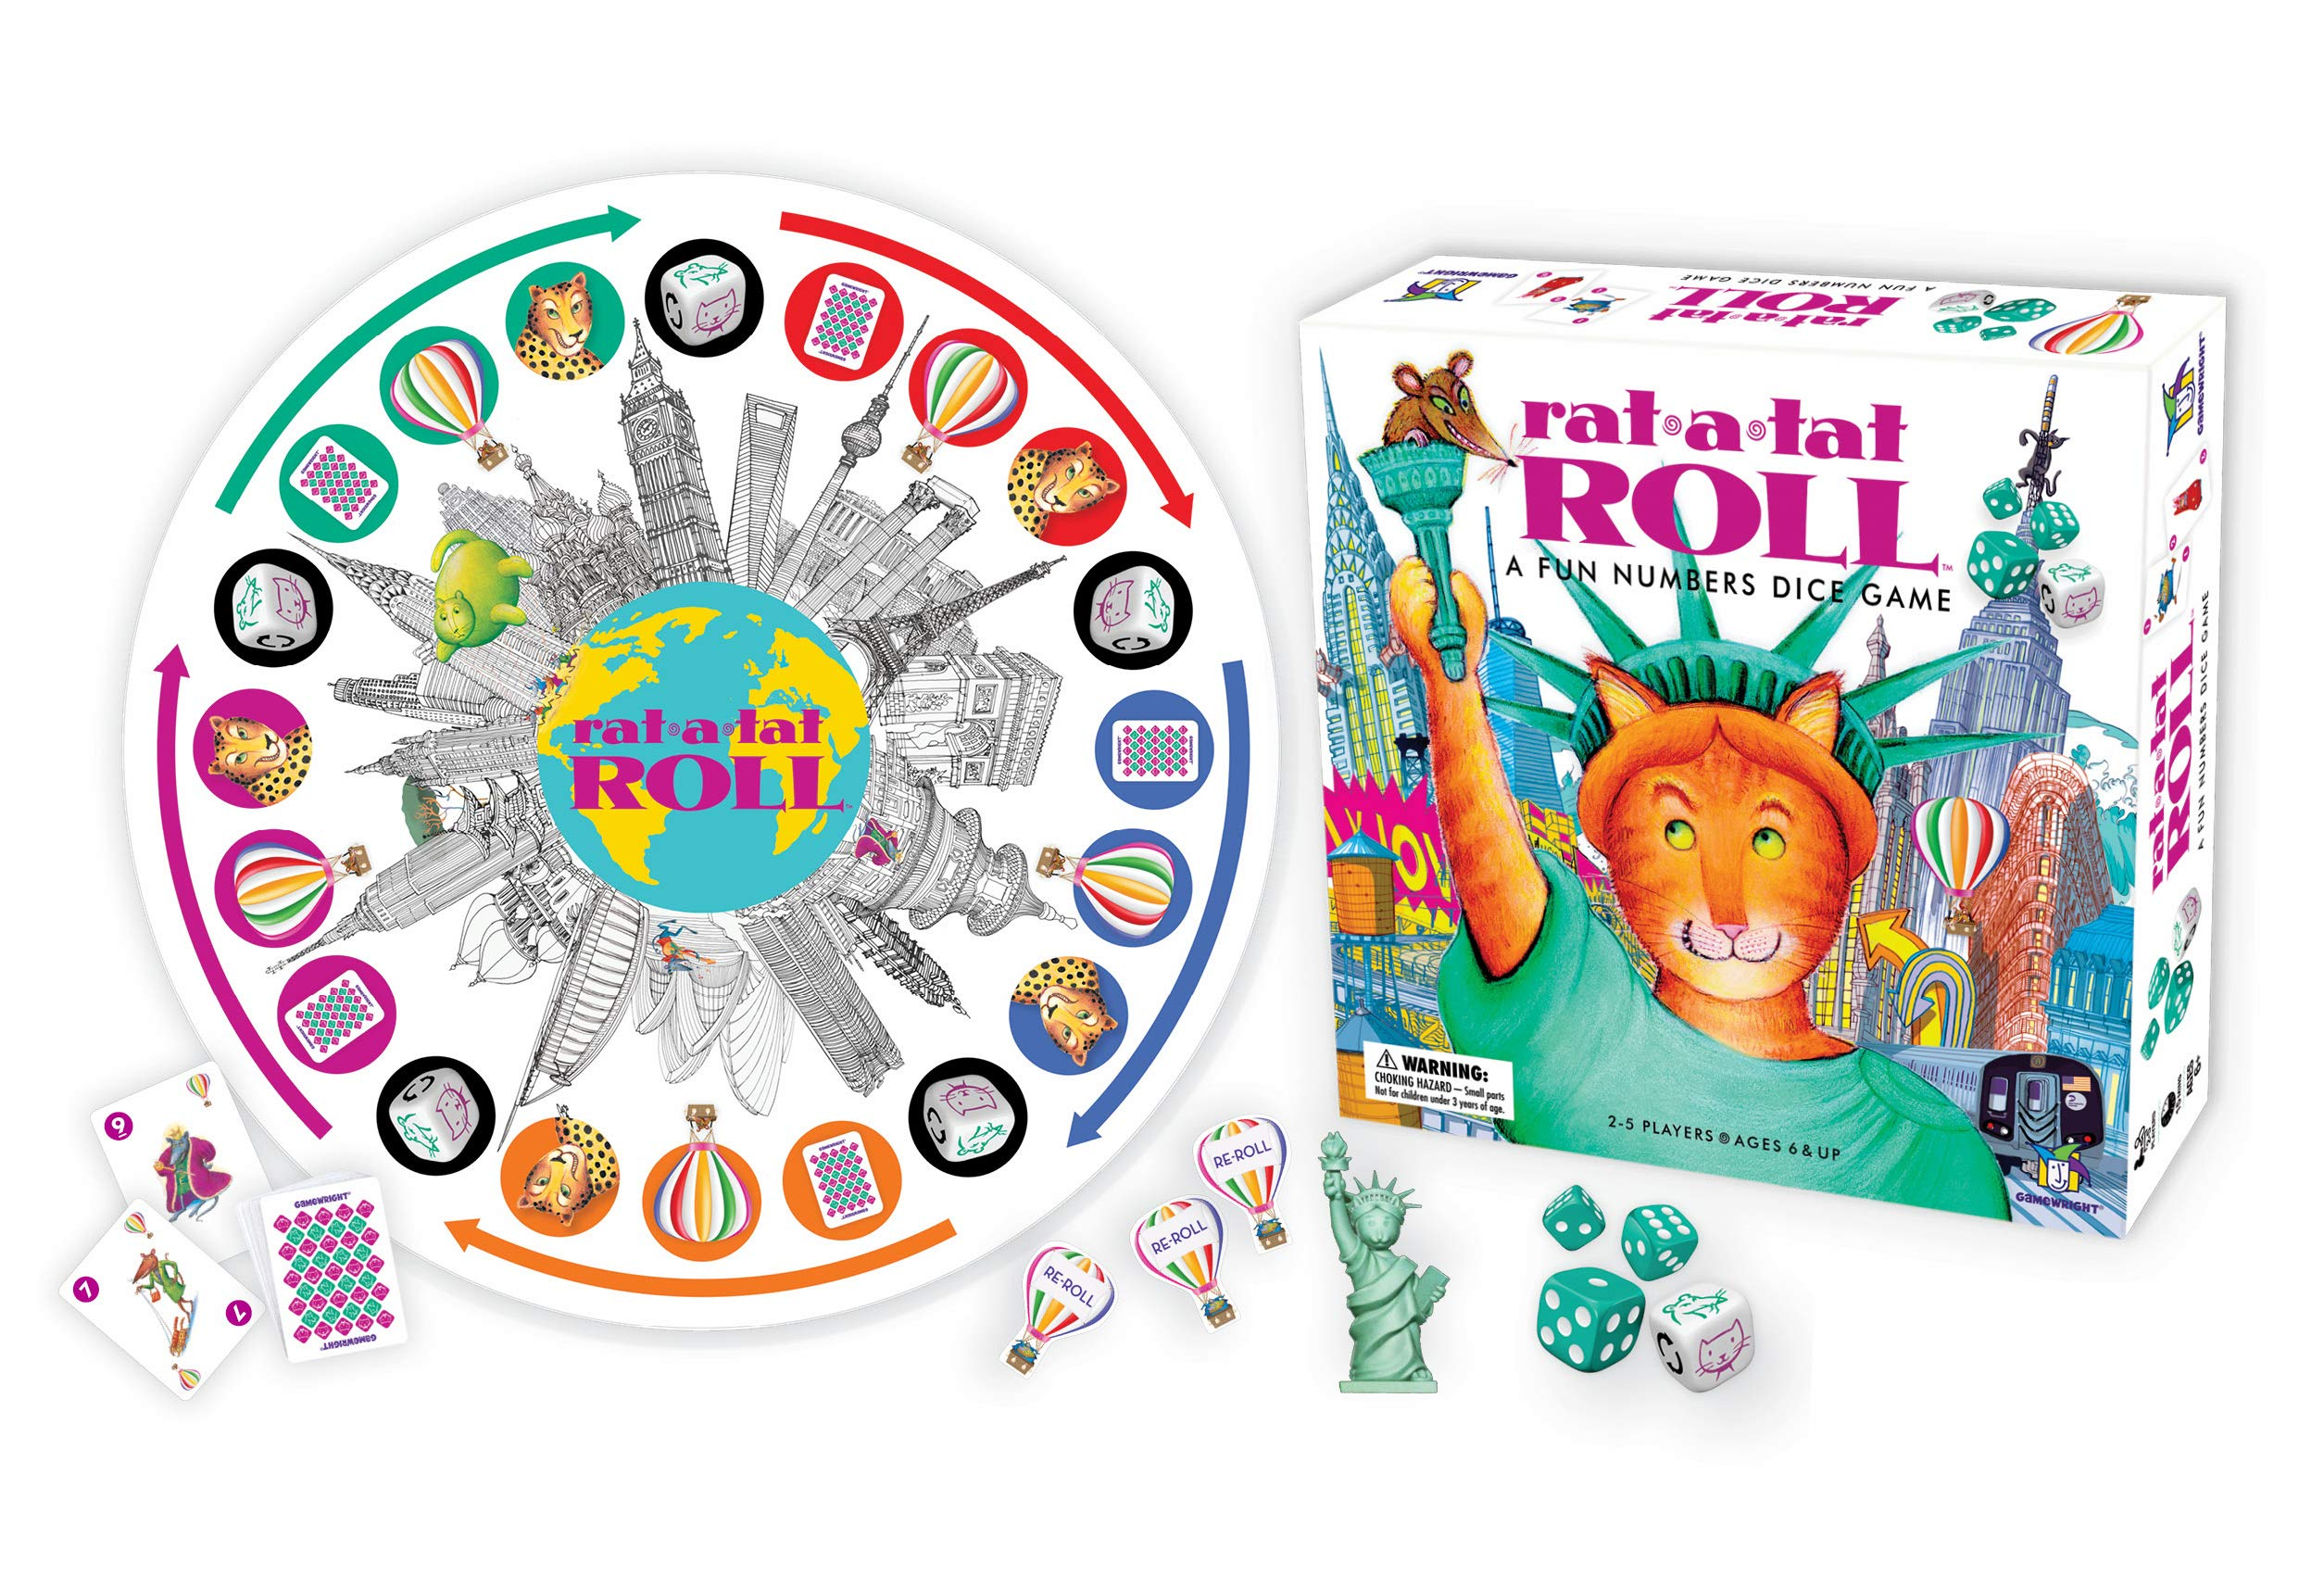 Rat-A-Tat Roll - A Fun Numbers Dice Game